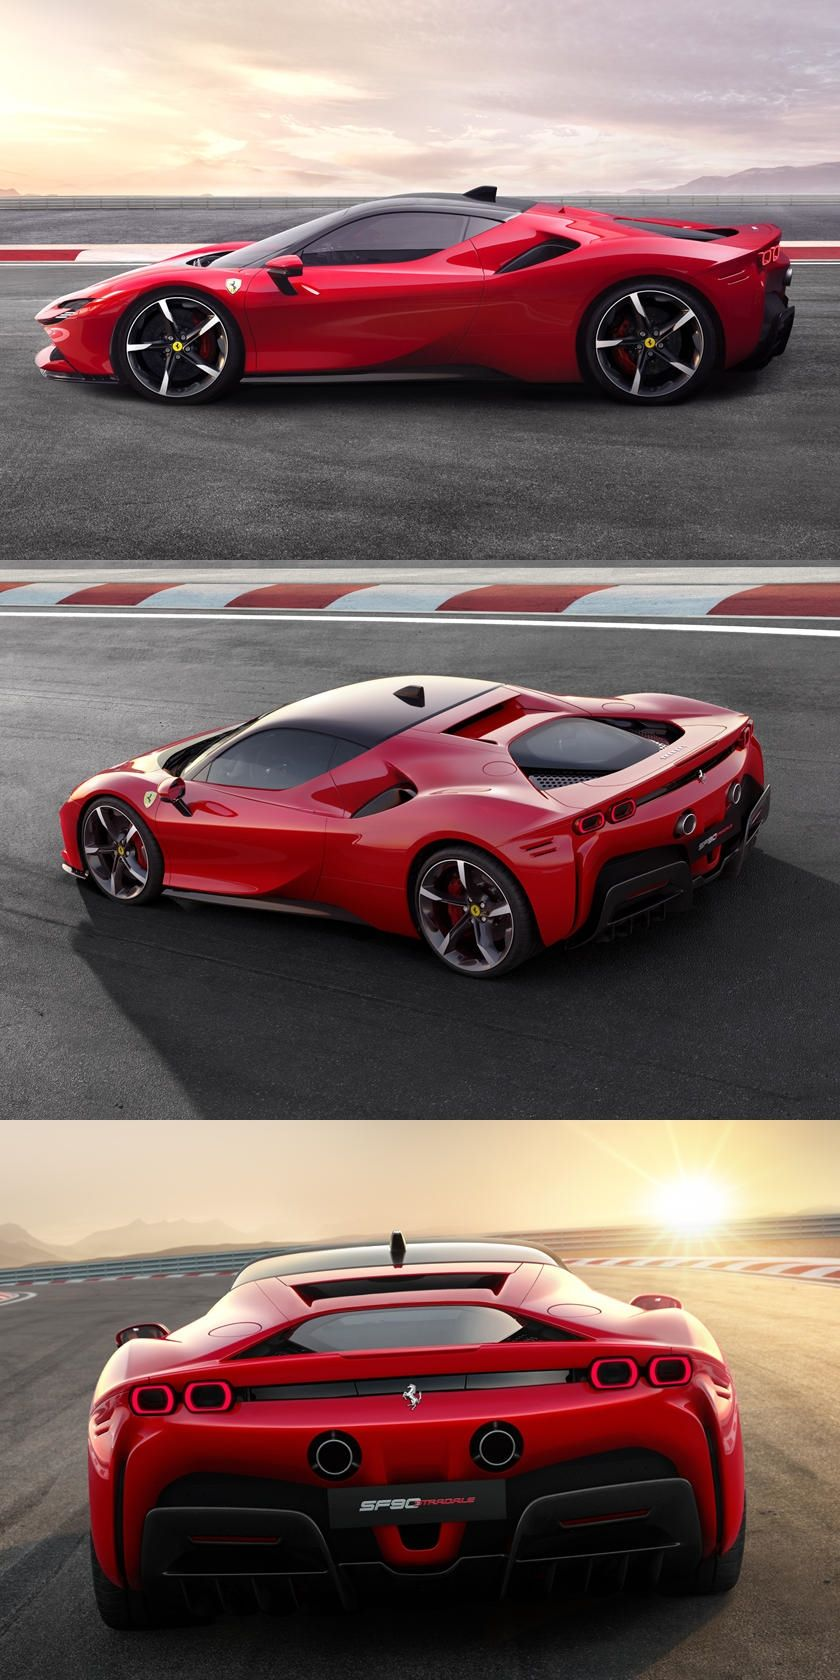 Ferrari Reminds The World Why It Builds The Best Supercars Today S Example The Sf90 Stradale In 2020 Super Cars Ferrari 288 Gto Ferrari Car